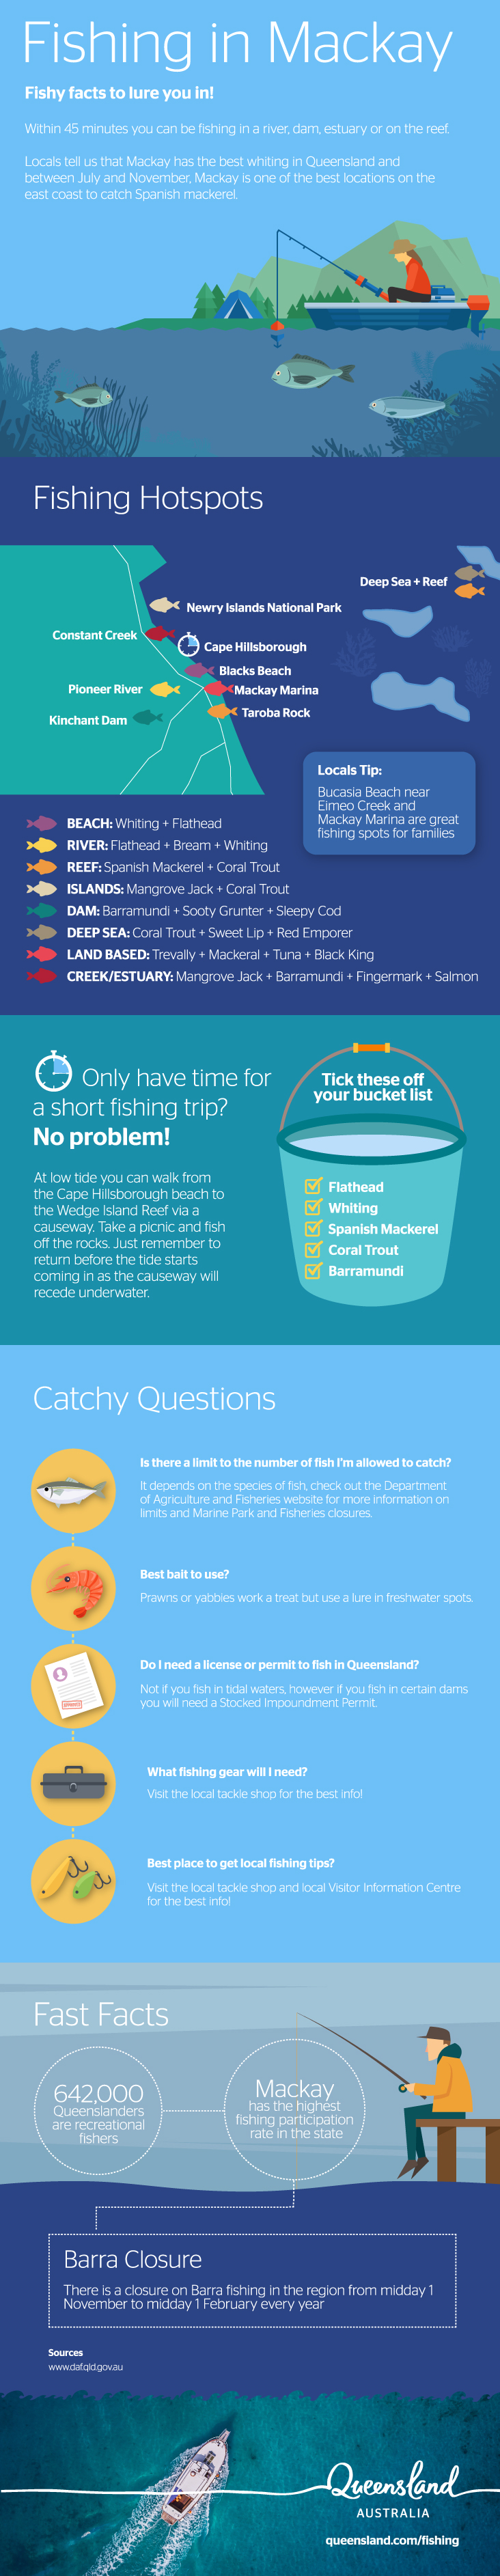 Fishing in Mackay Infographic